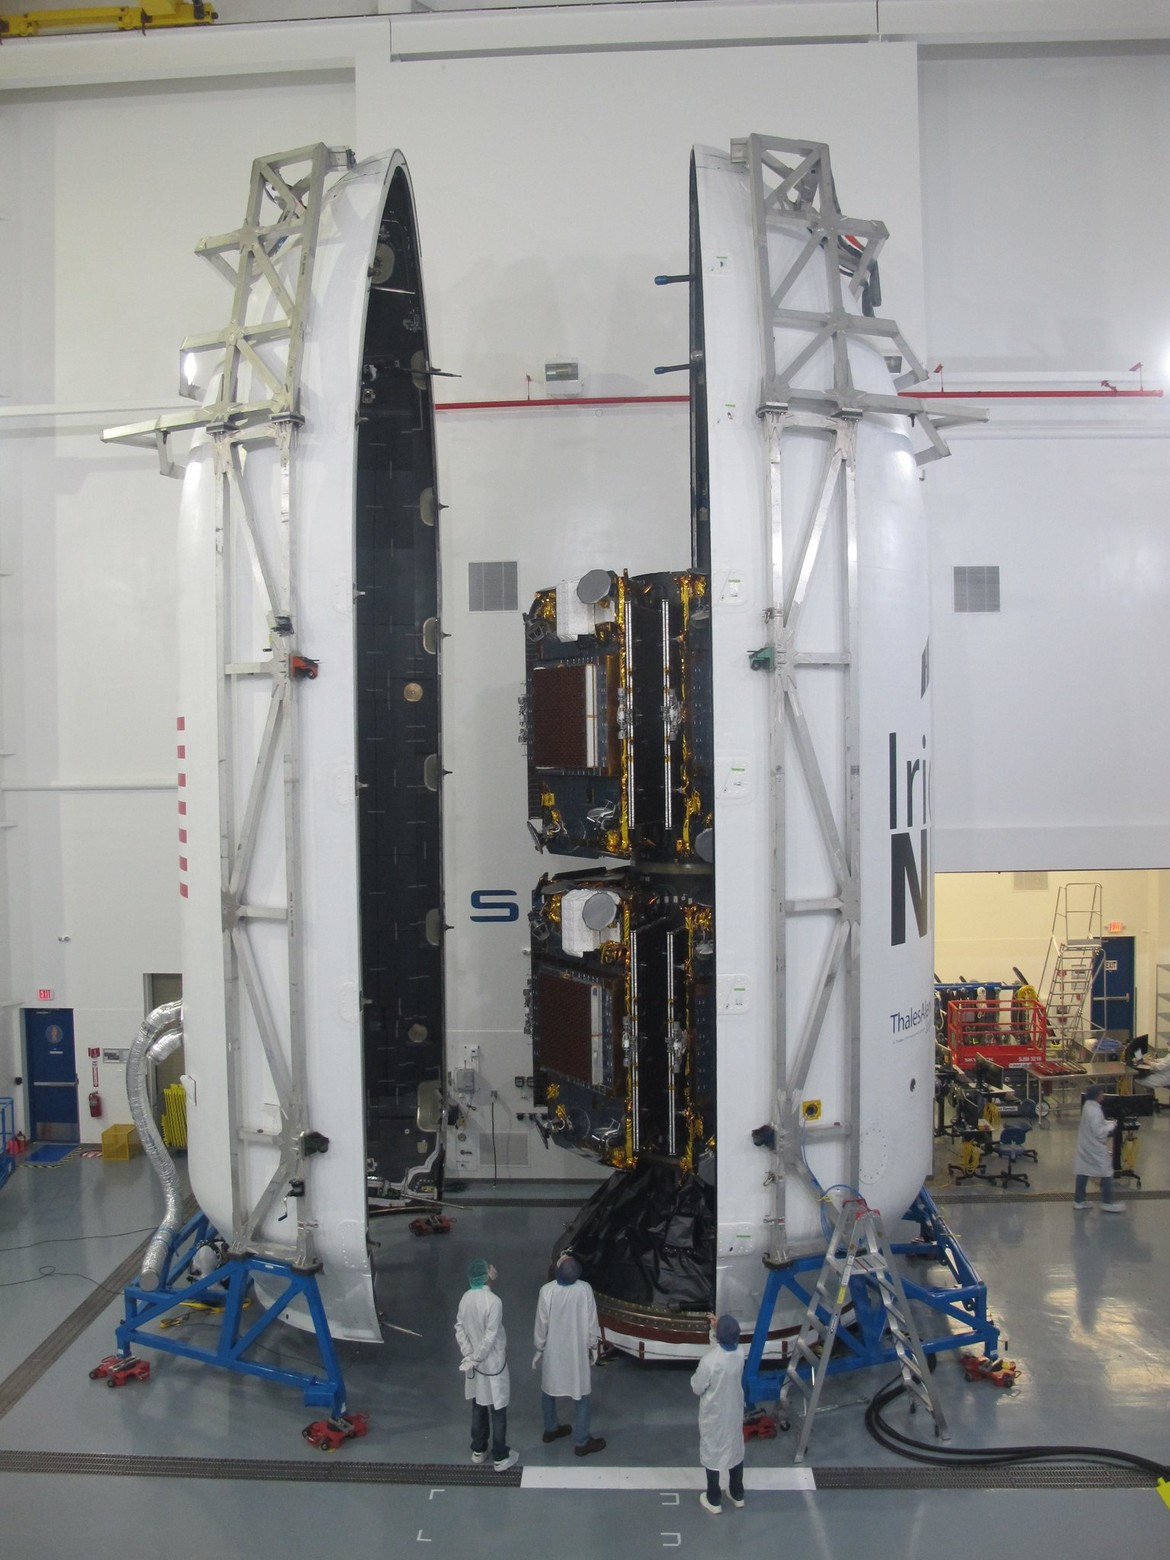 Ten Iridium NEXT satellites are mounted inside the SpaceX Falcon 9 payload fairing, ready to be places on top of the rocket stack. Note the people at the bottom for scale. Credit: Iridium